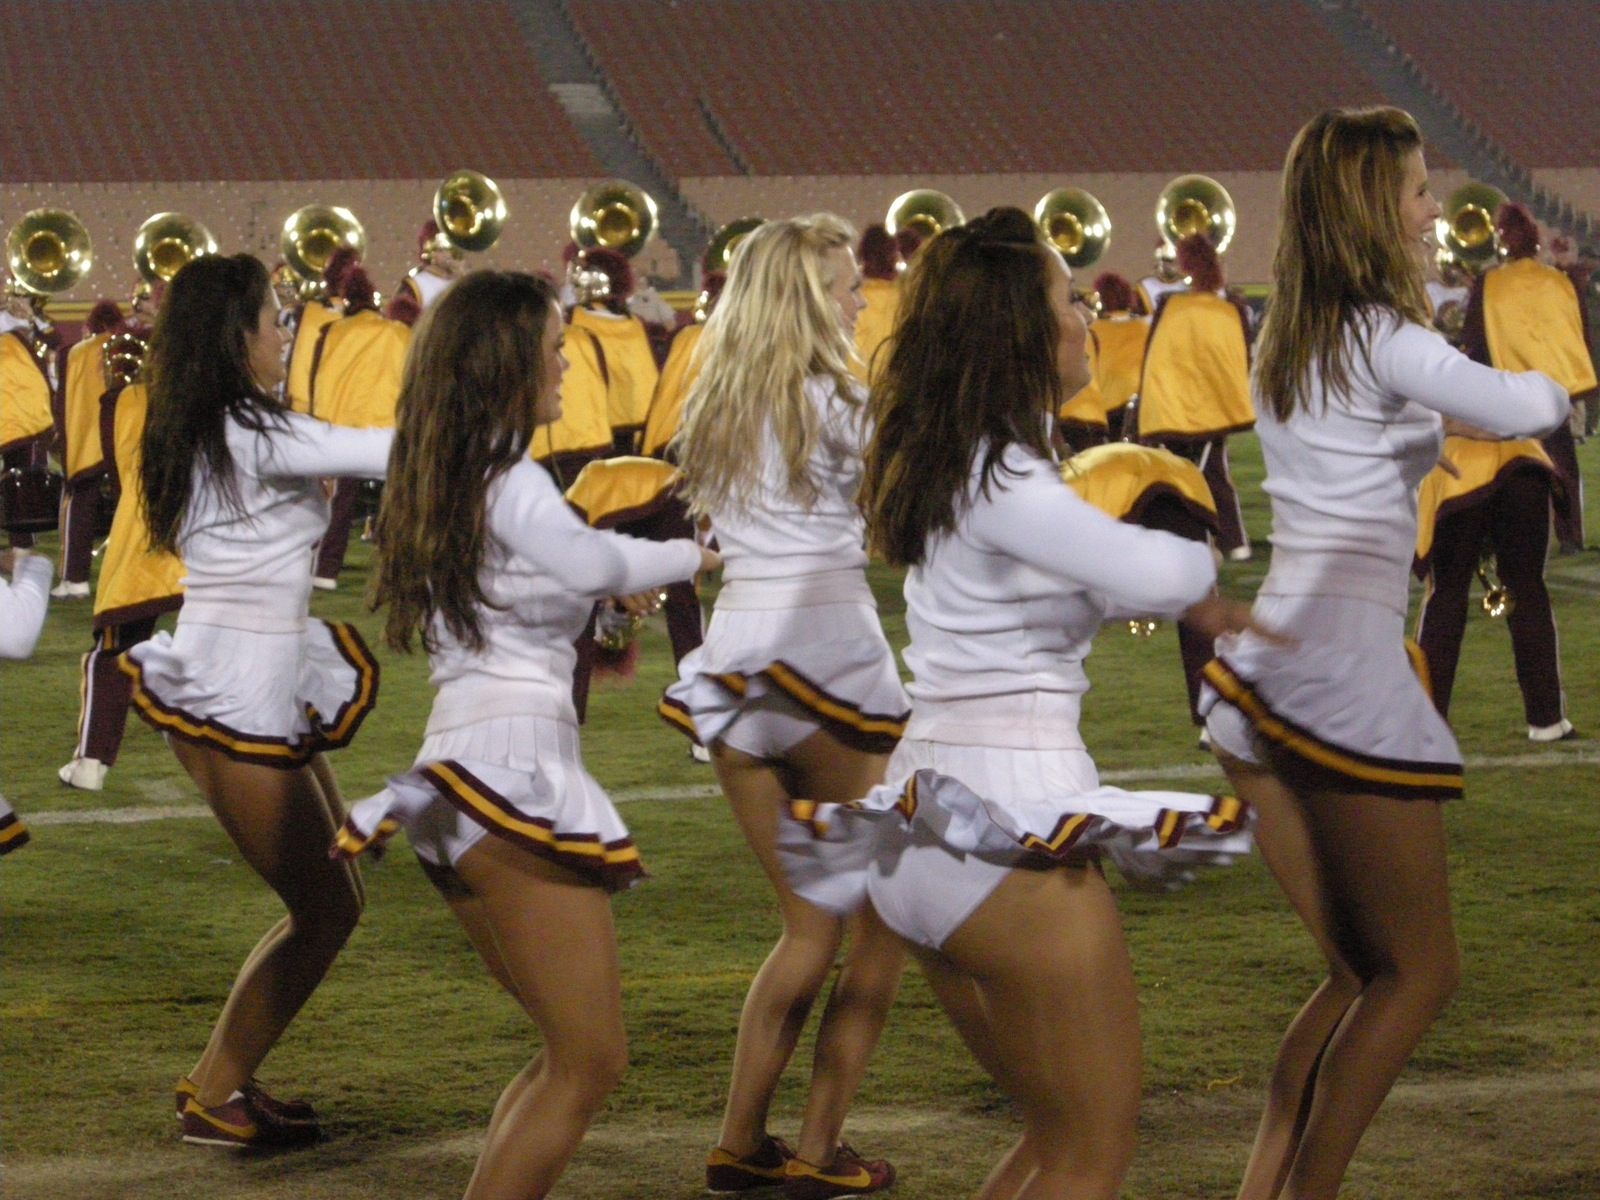 Having ass cheerleaders upskirt pics sexy ladies